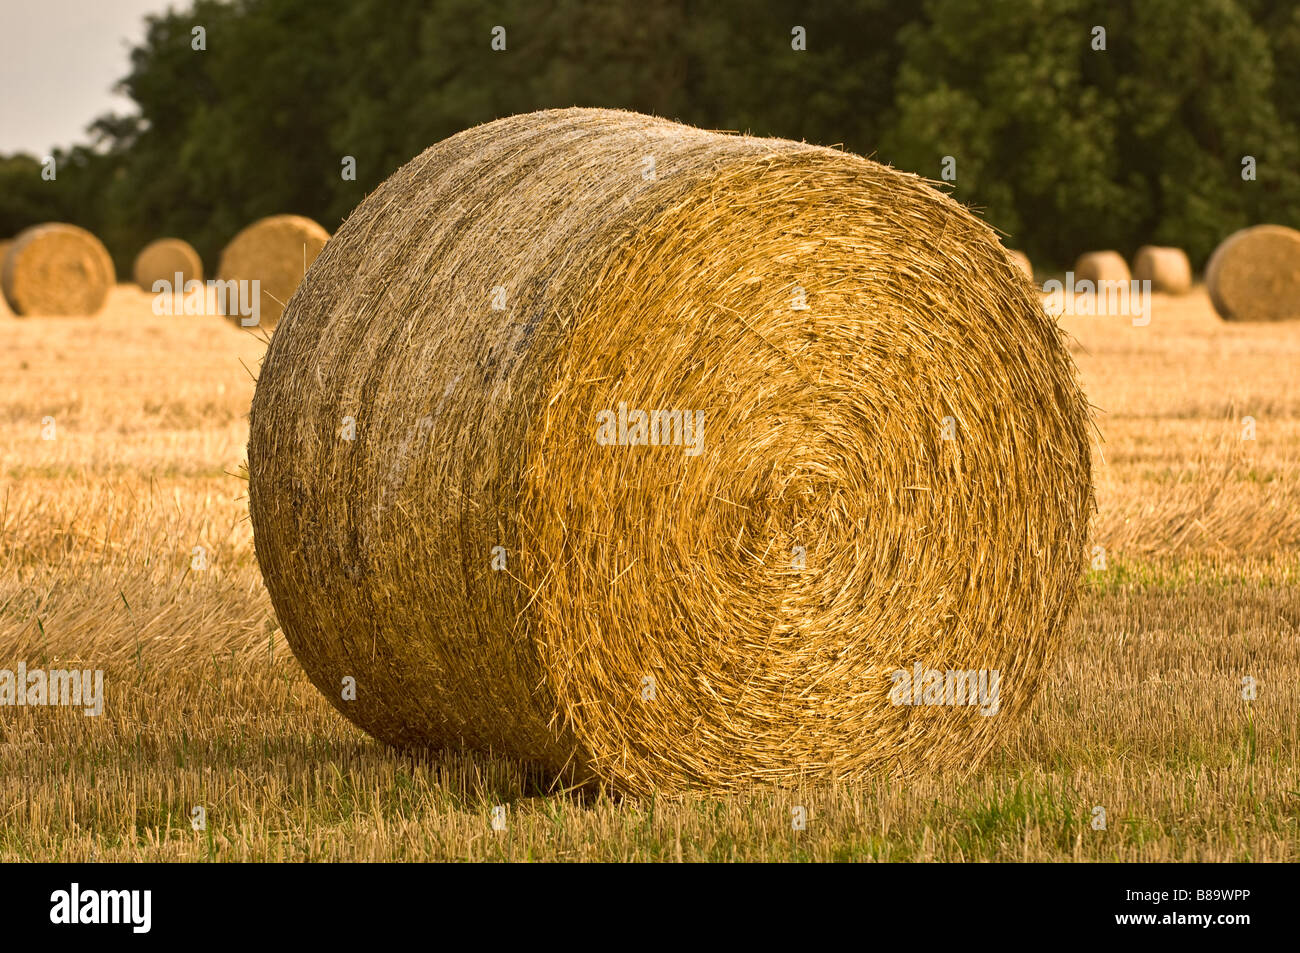 Hay bale in harvested field - Stock Image